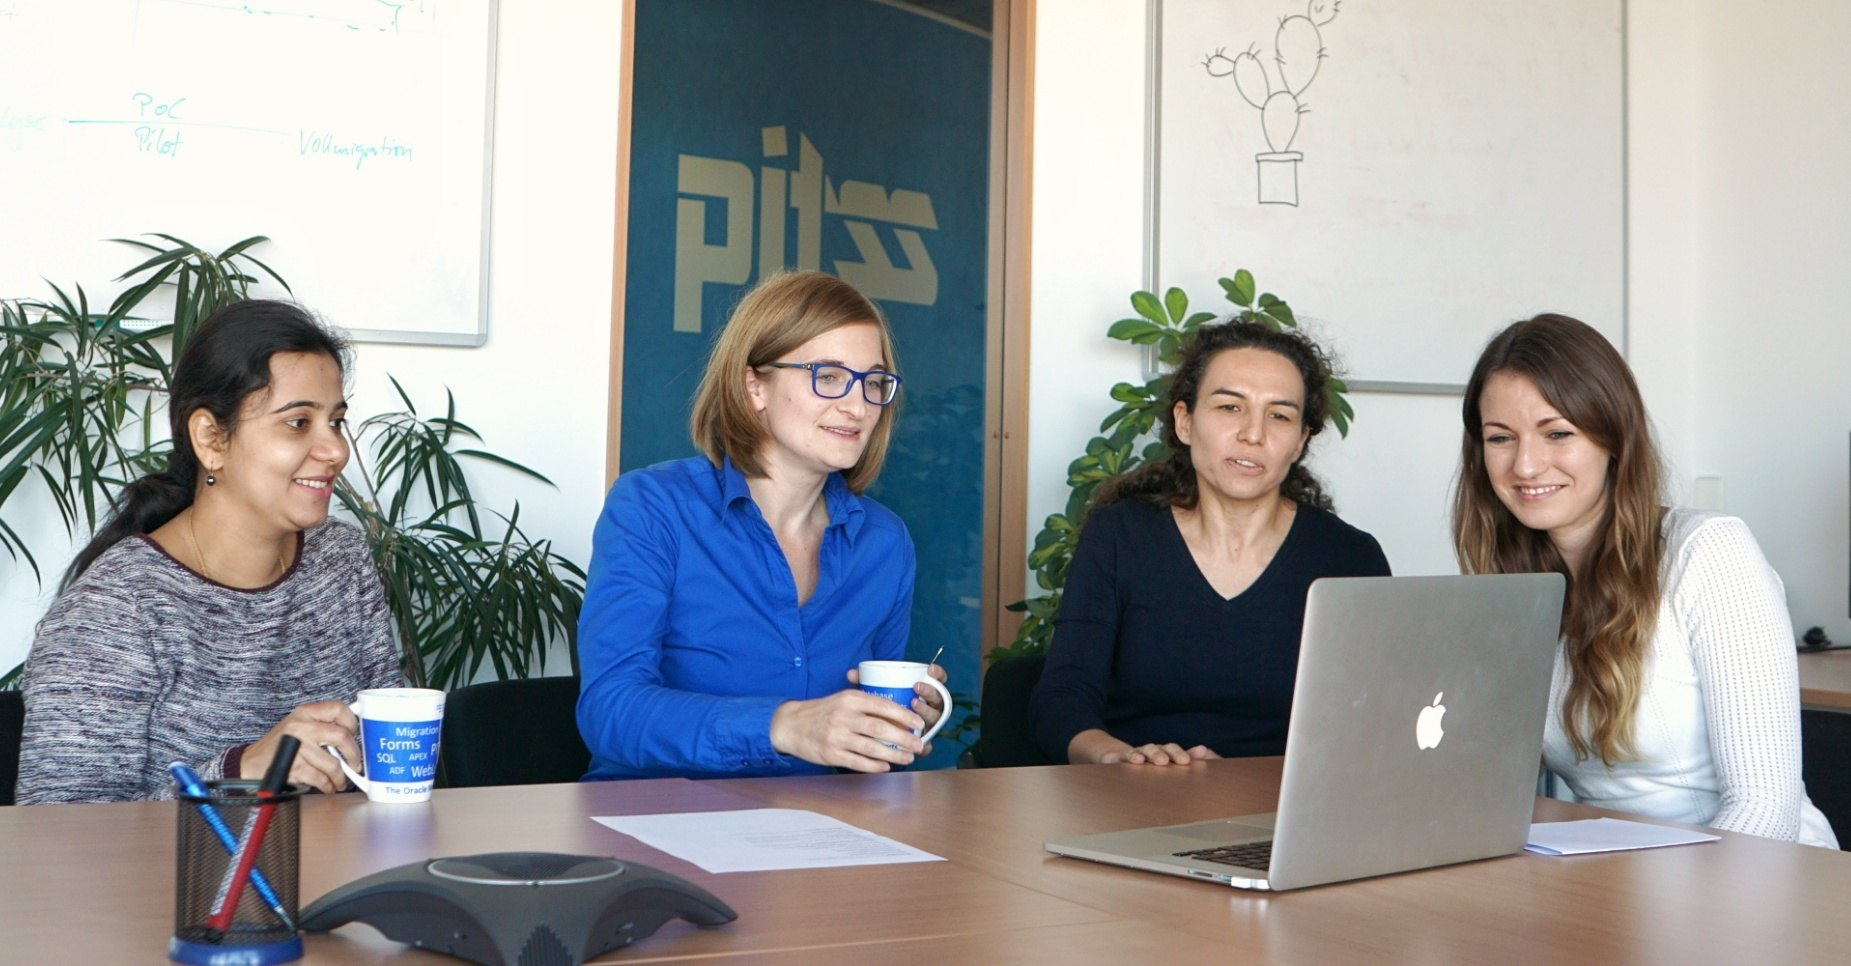 Die PITSS-IT-Frauen im Interview